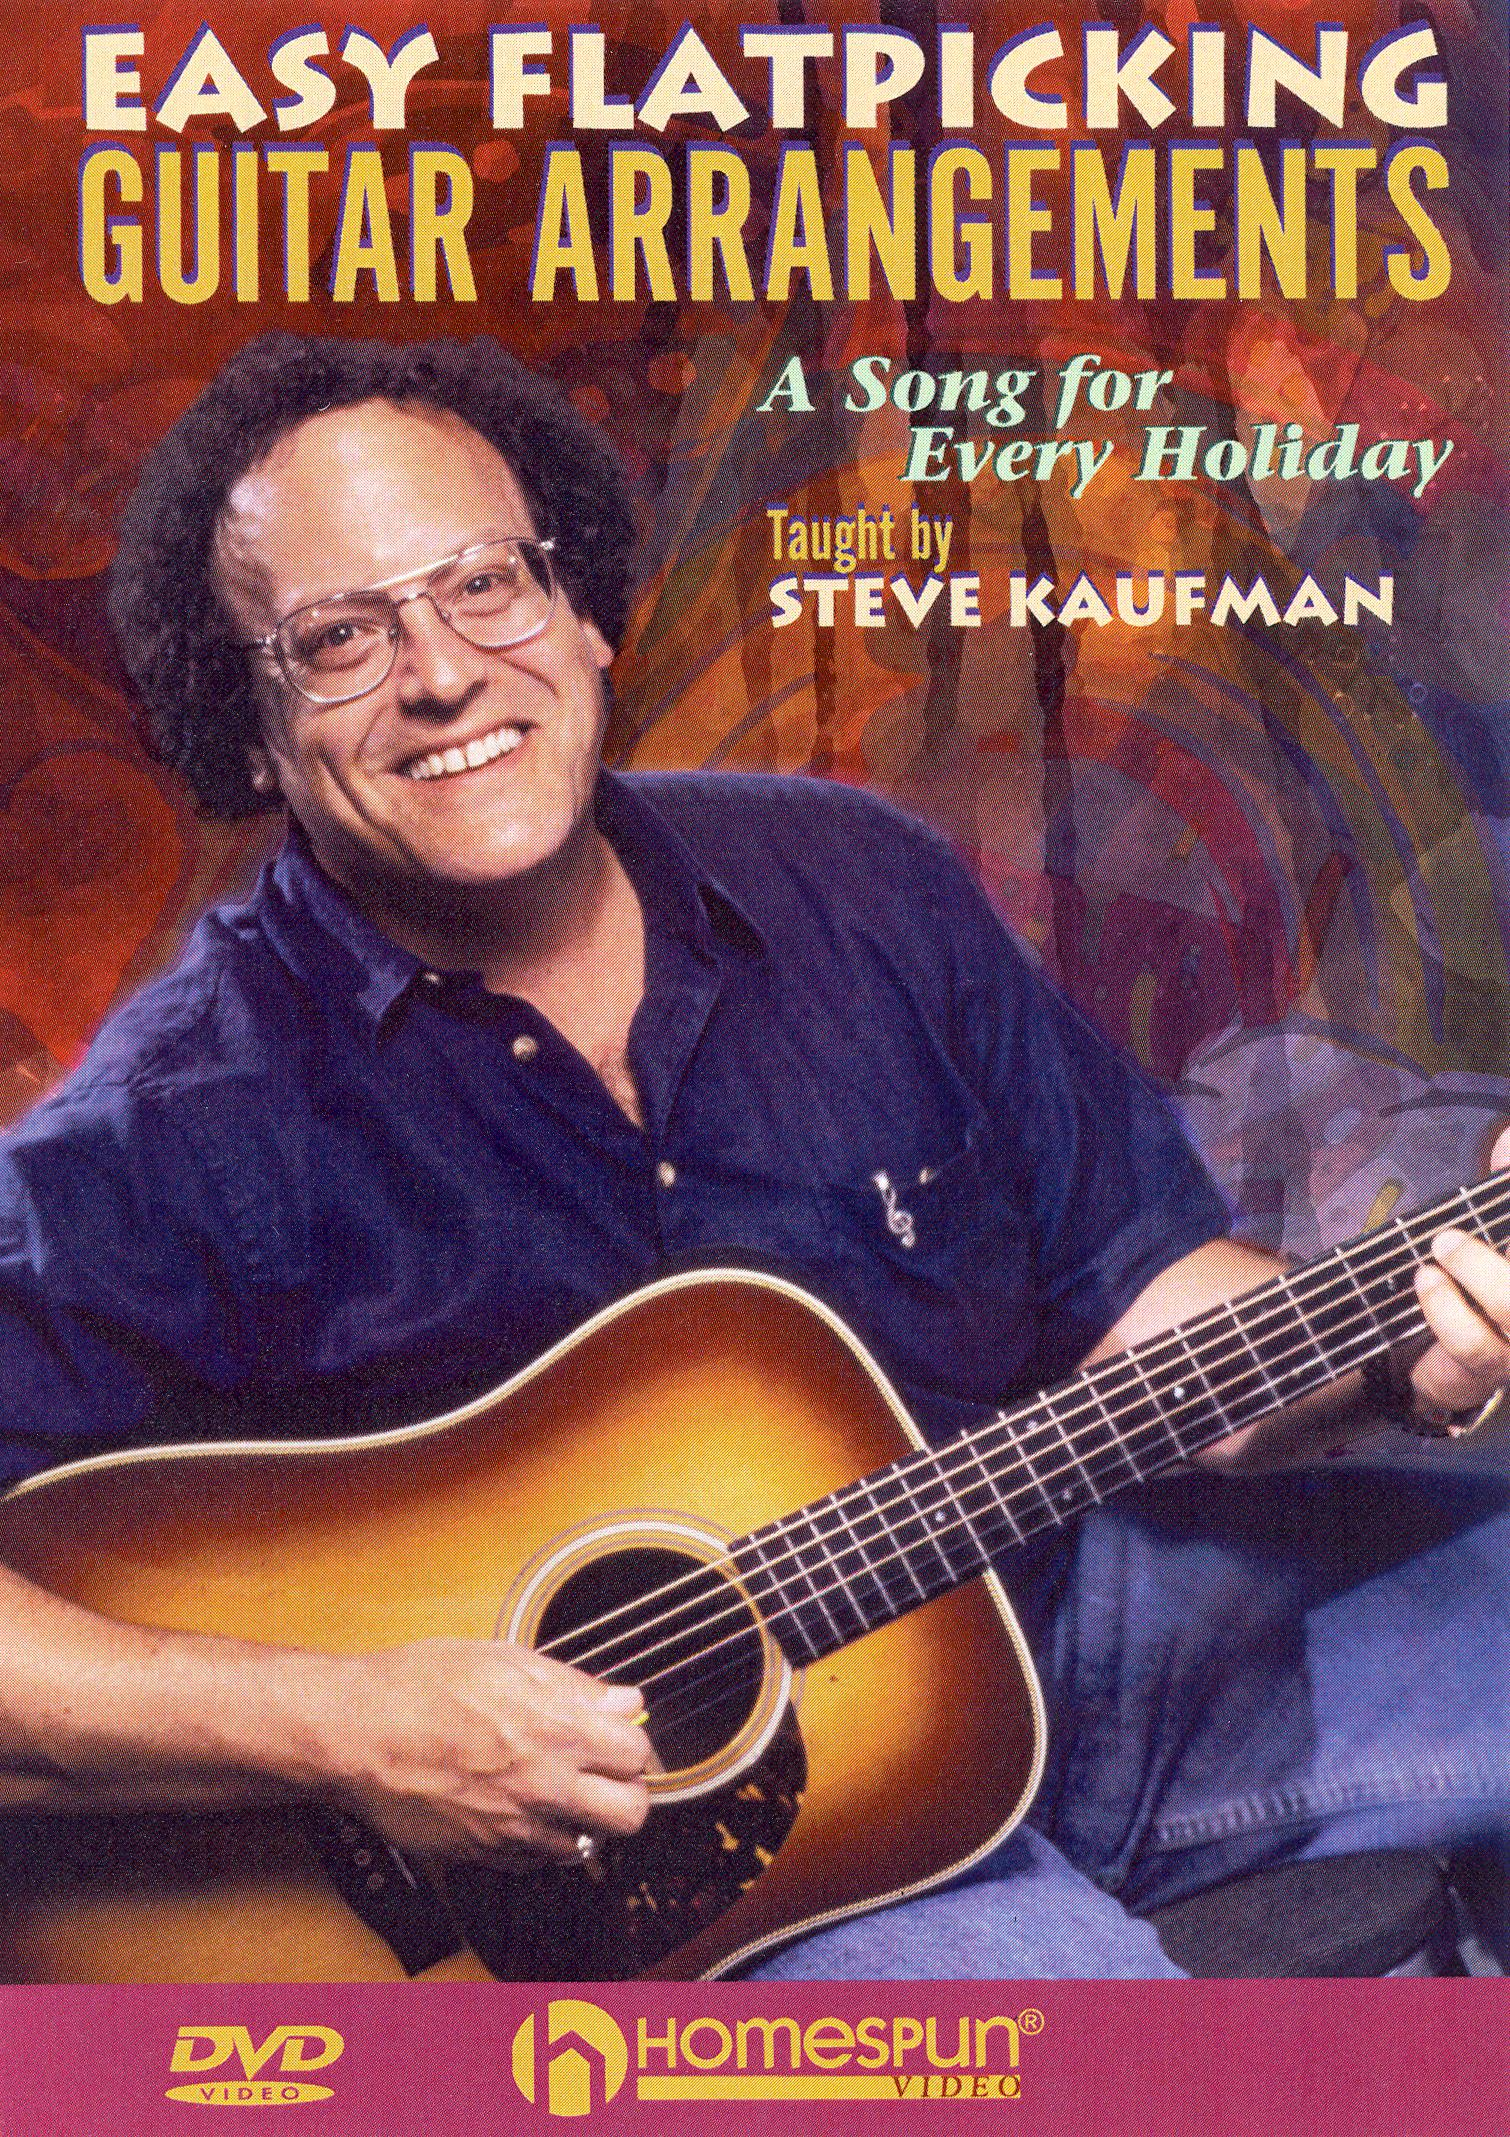 Steve Kaufman: Easy Flatpicking Guitar Arrangements